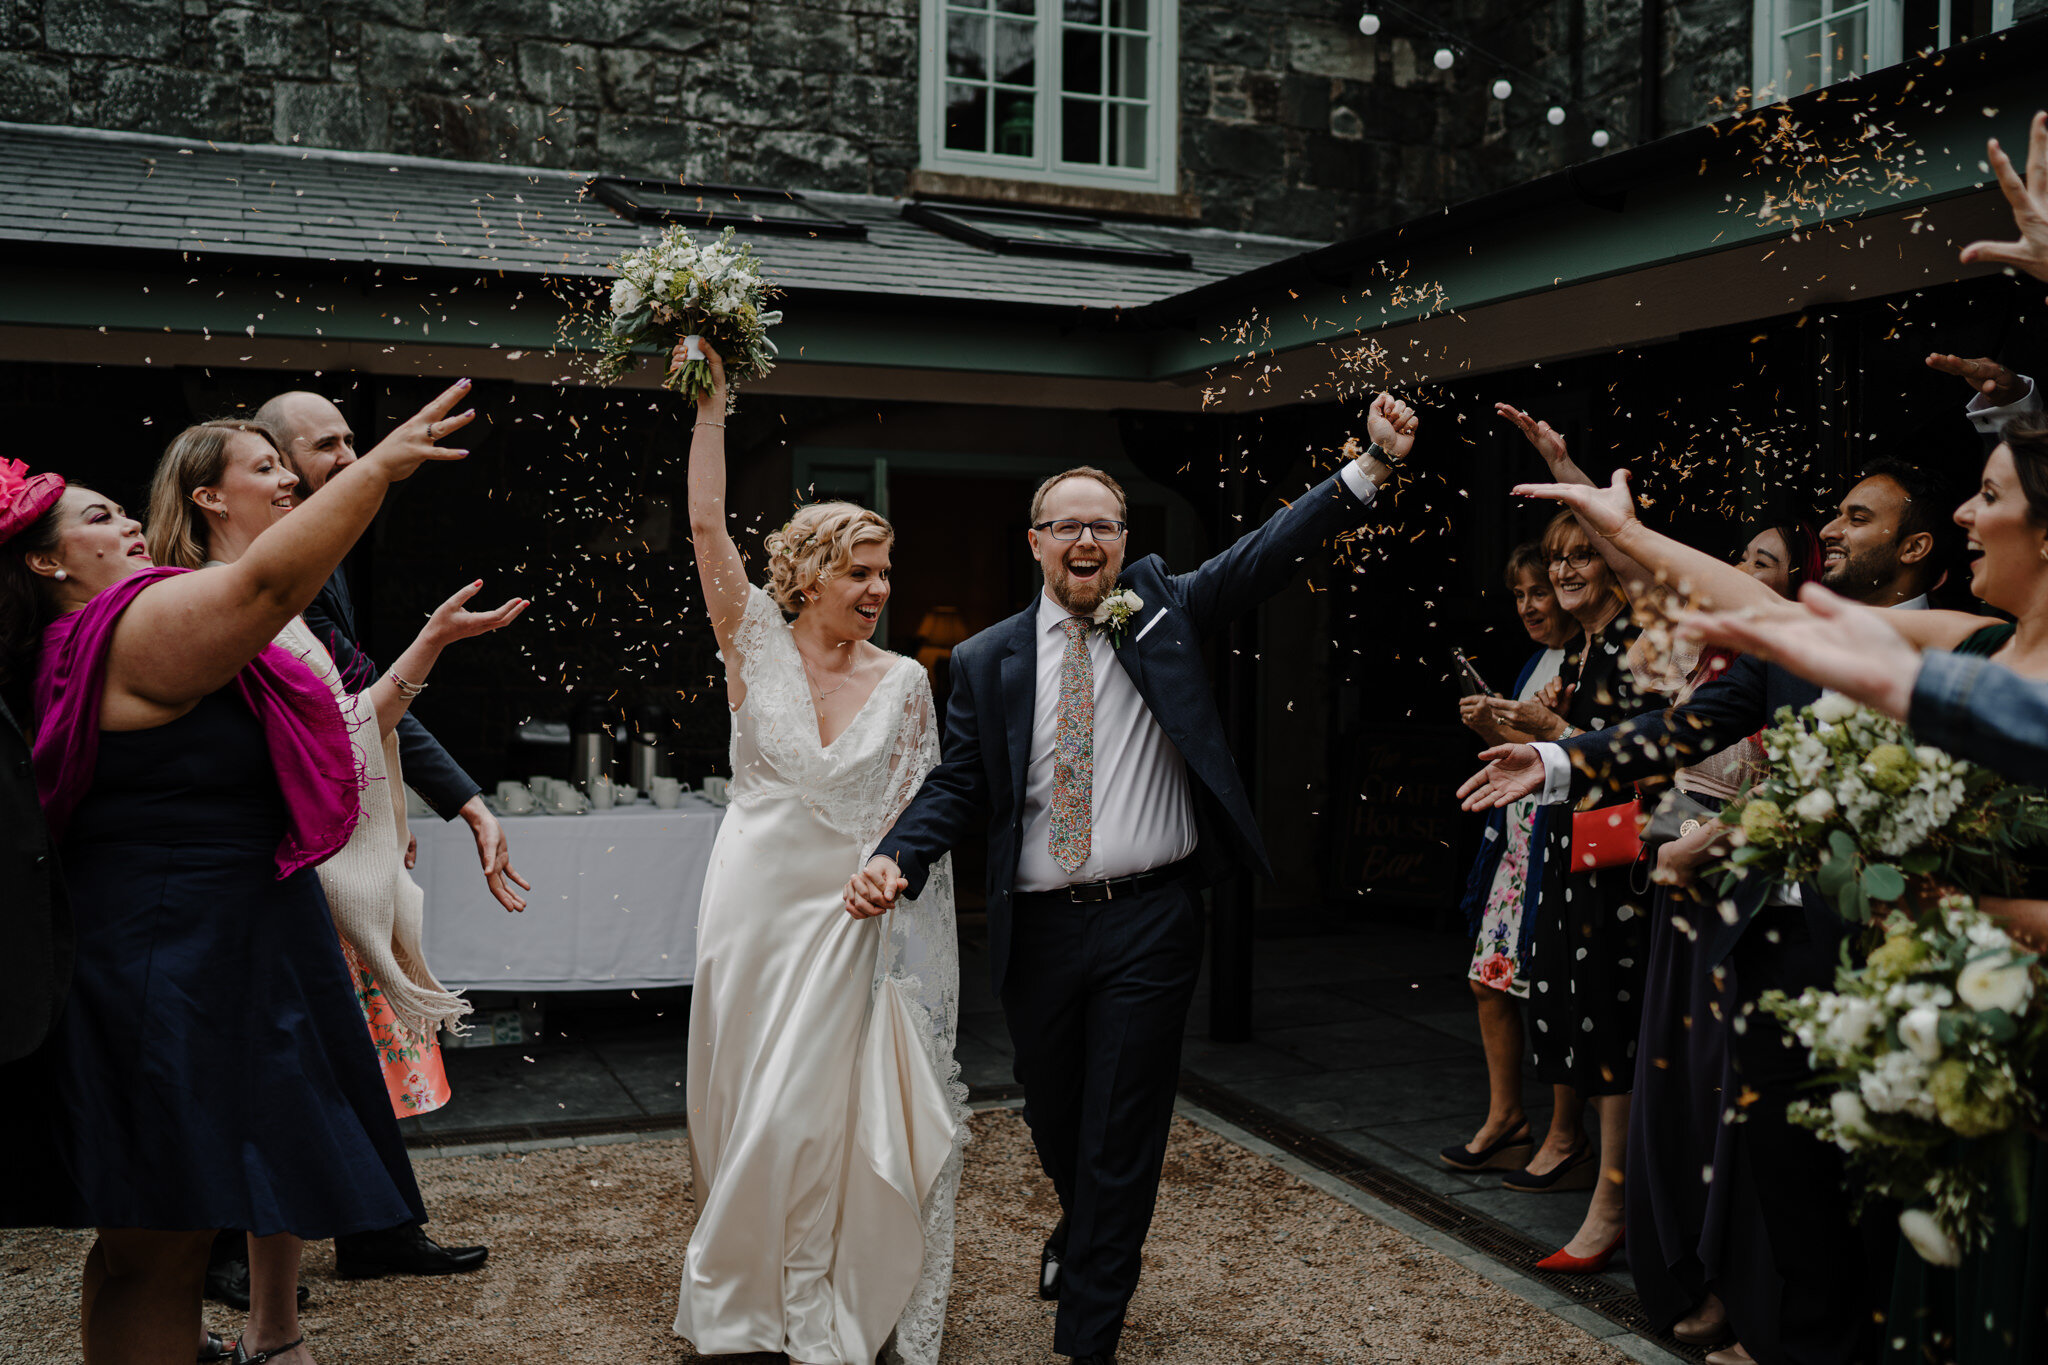 Tullyveery House wedding - Read More